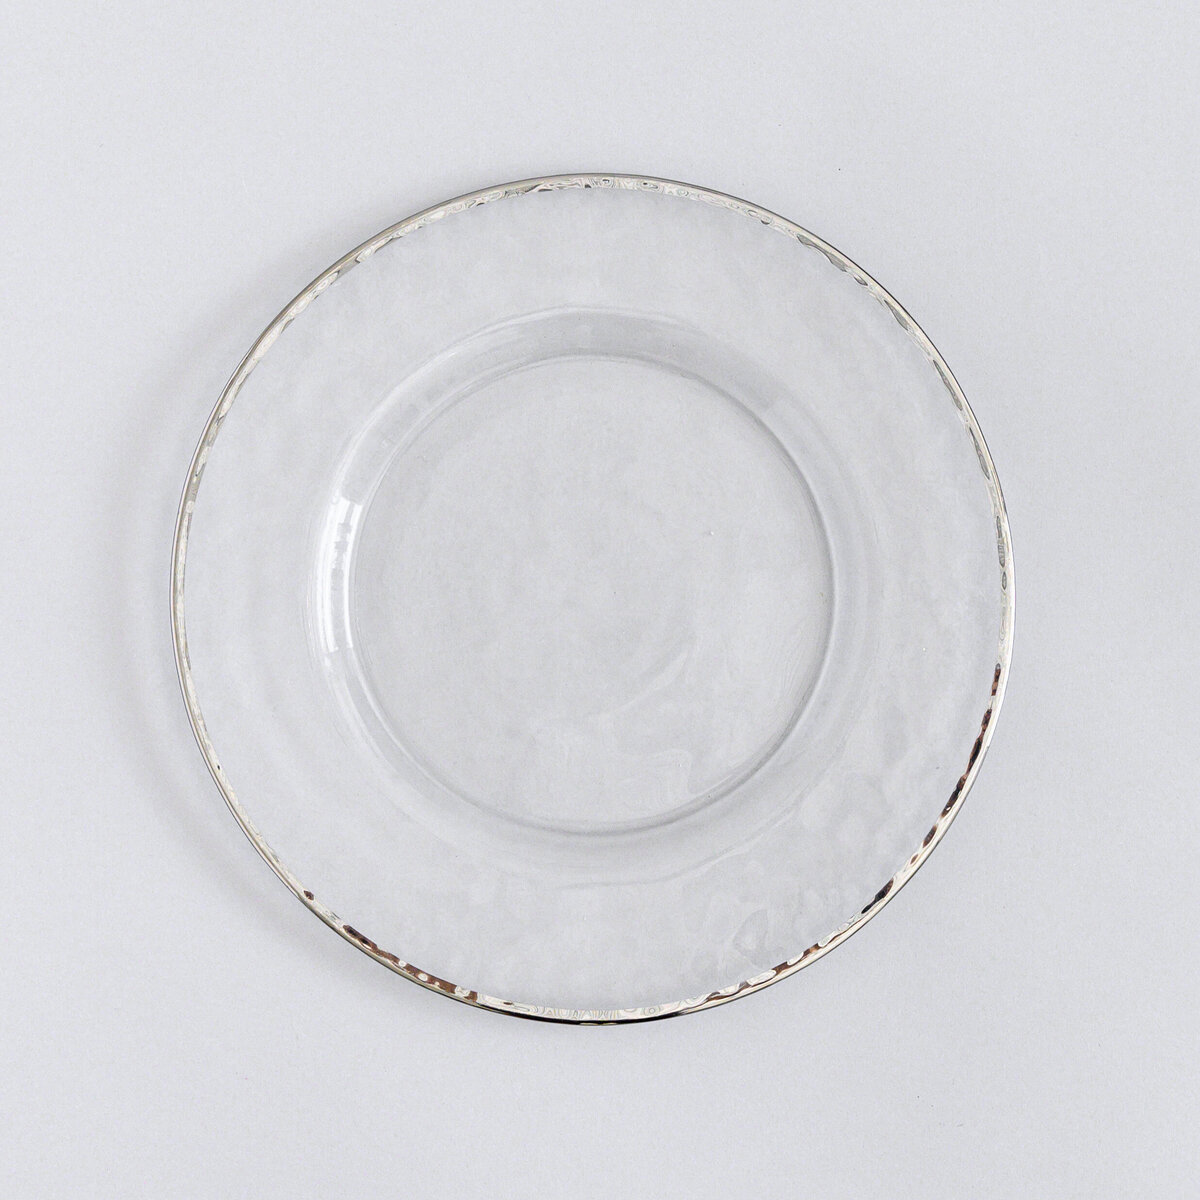 Toronto-Plate-Rental-Tableware-Chargers10